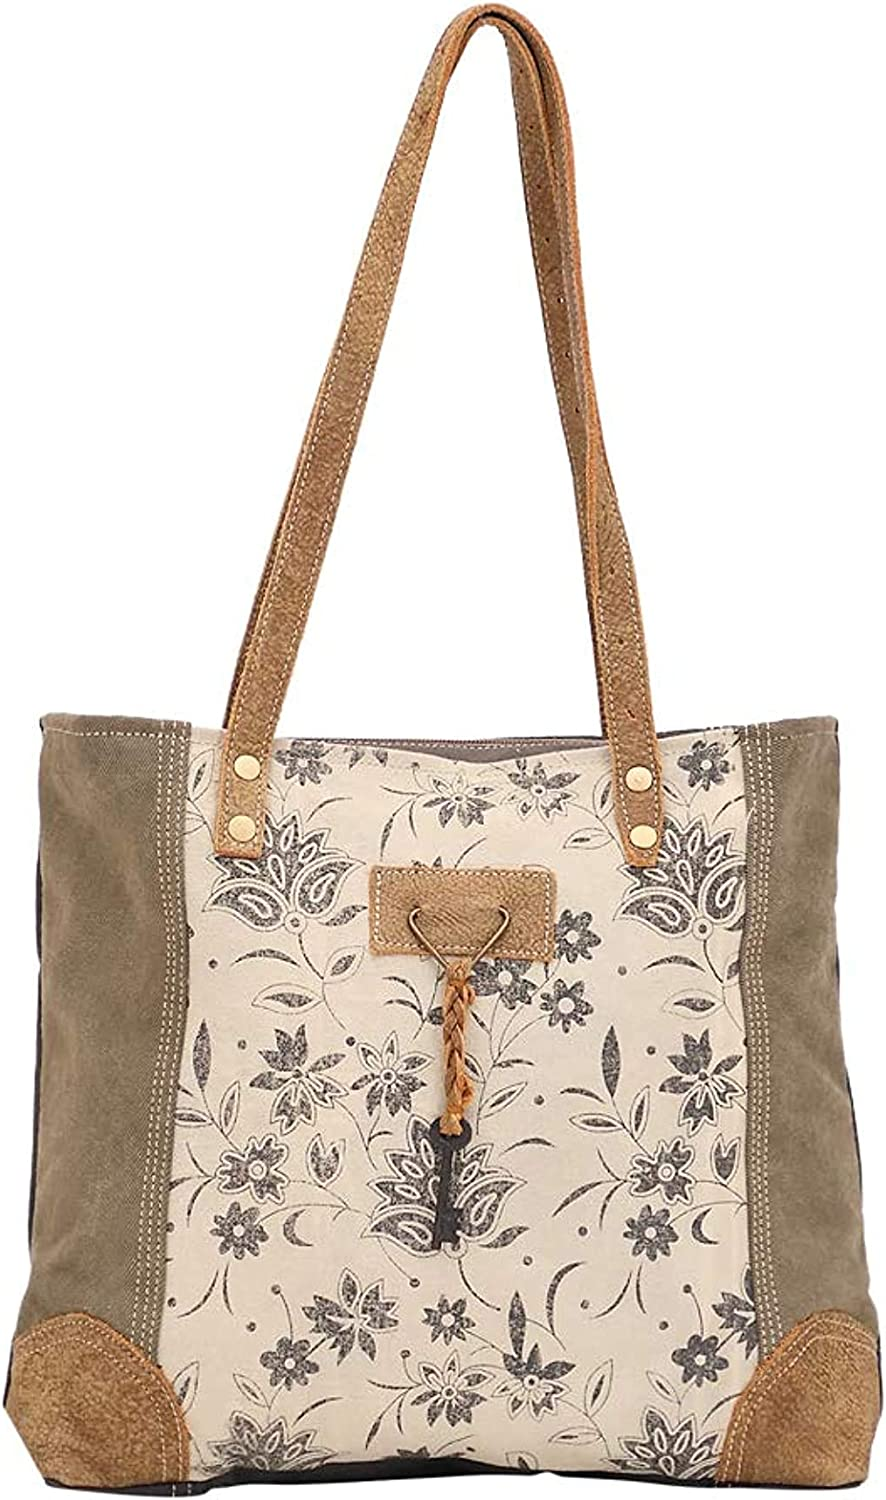 Myra Soldering Bag All items free shipping Unique Key Upcycled S-1522 Canvas Cowhide B Tote